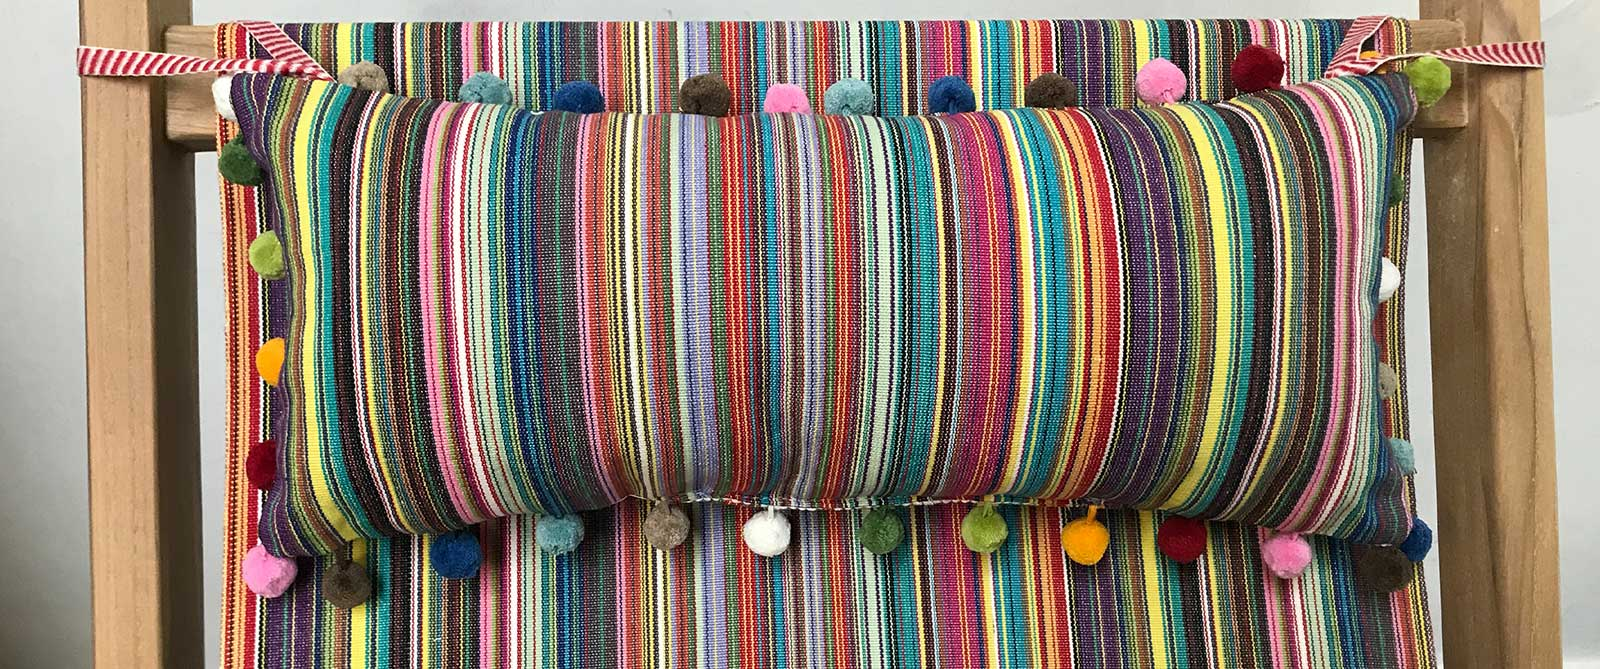 Deckchair Headrest Cushions